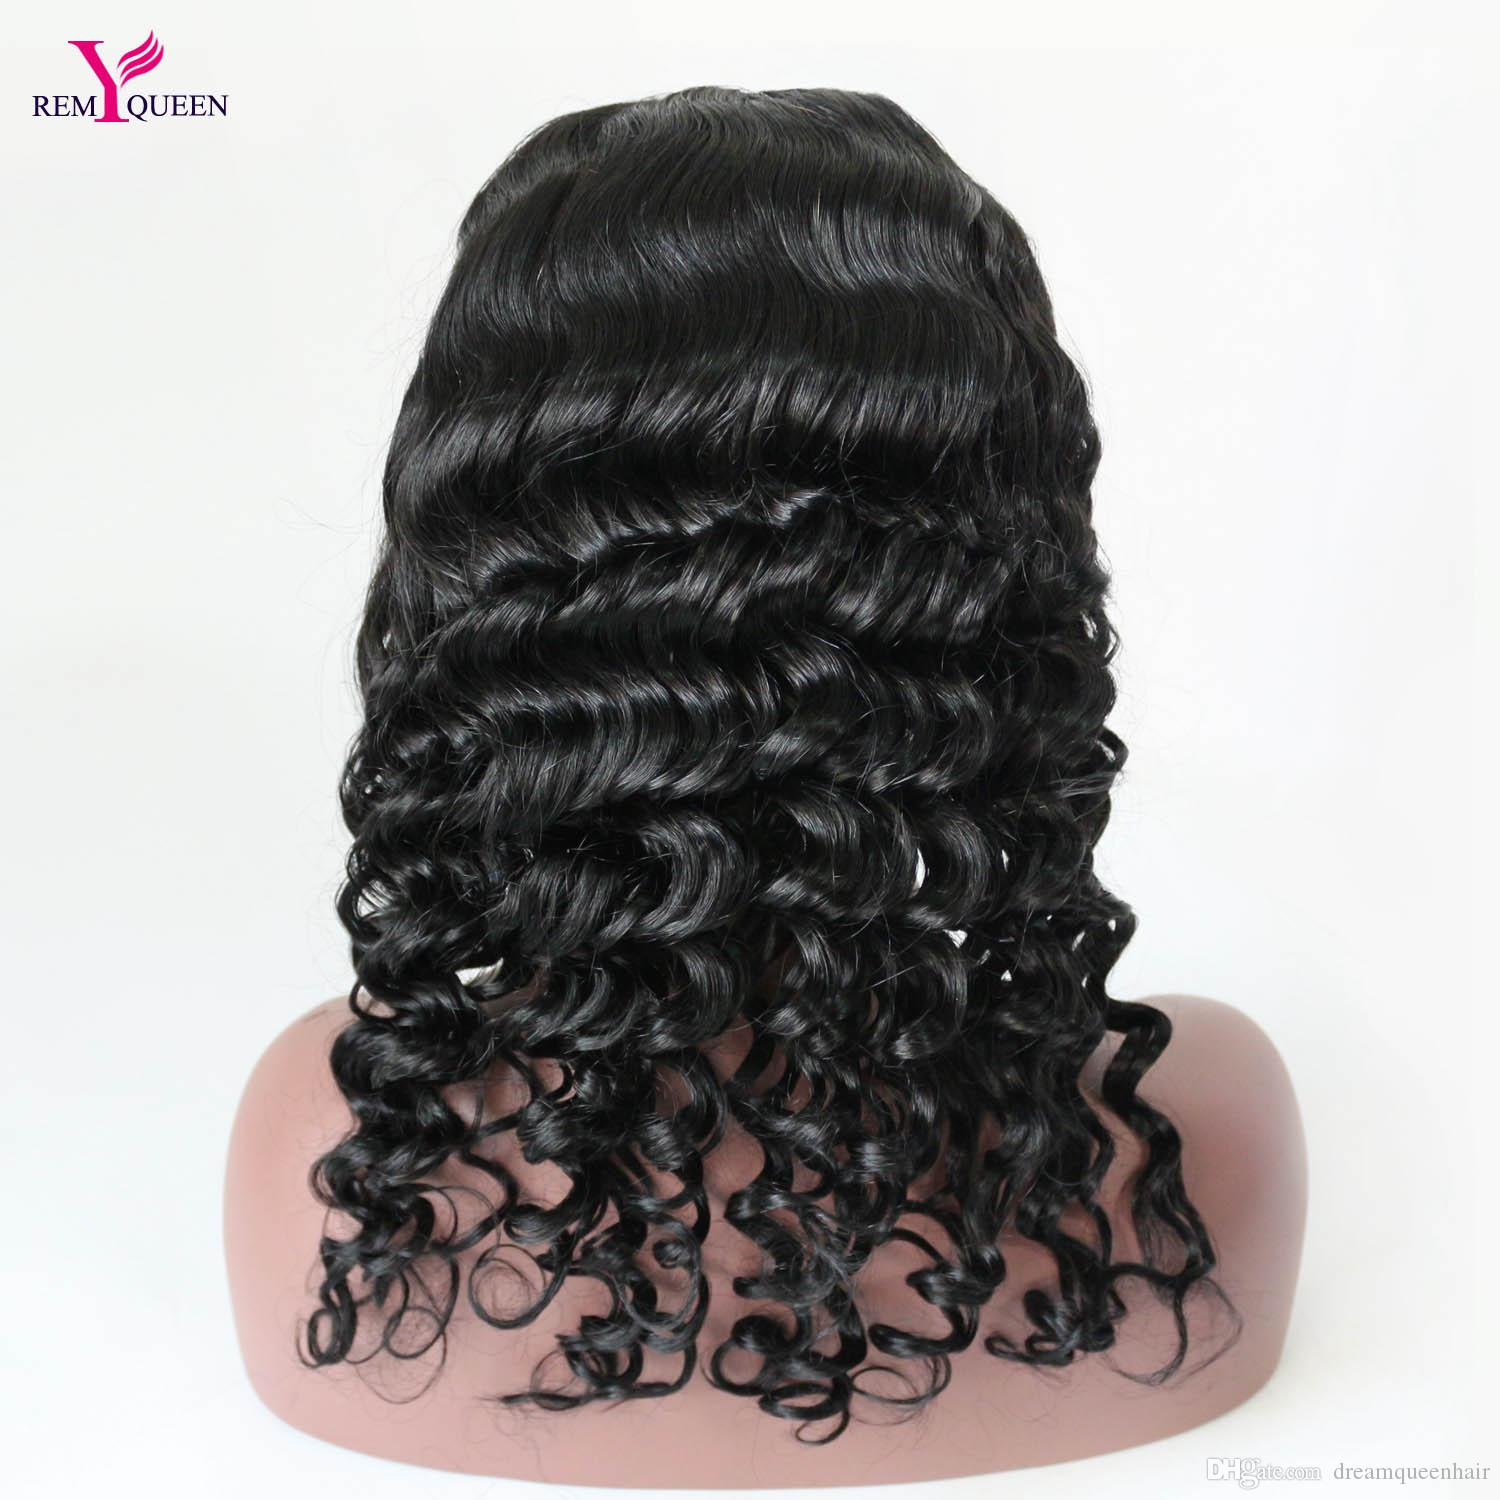 Remy Queen 1# Jet Black Deep Wave Lace Front Wig 100% Human Hair 130% Medium Density Pre Plucked With Baby Hair Bleached Knots